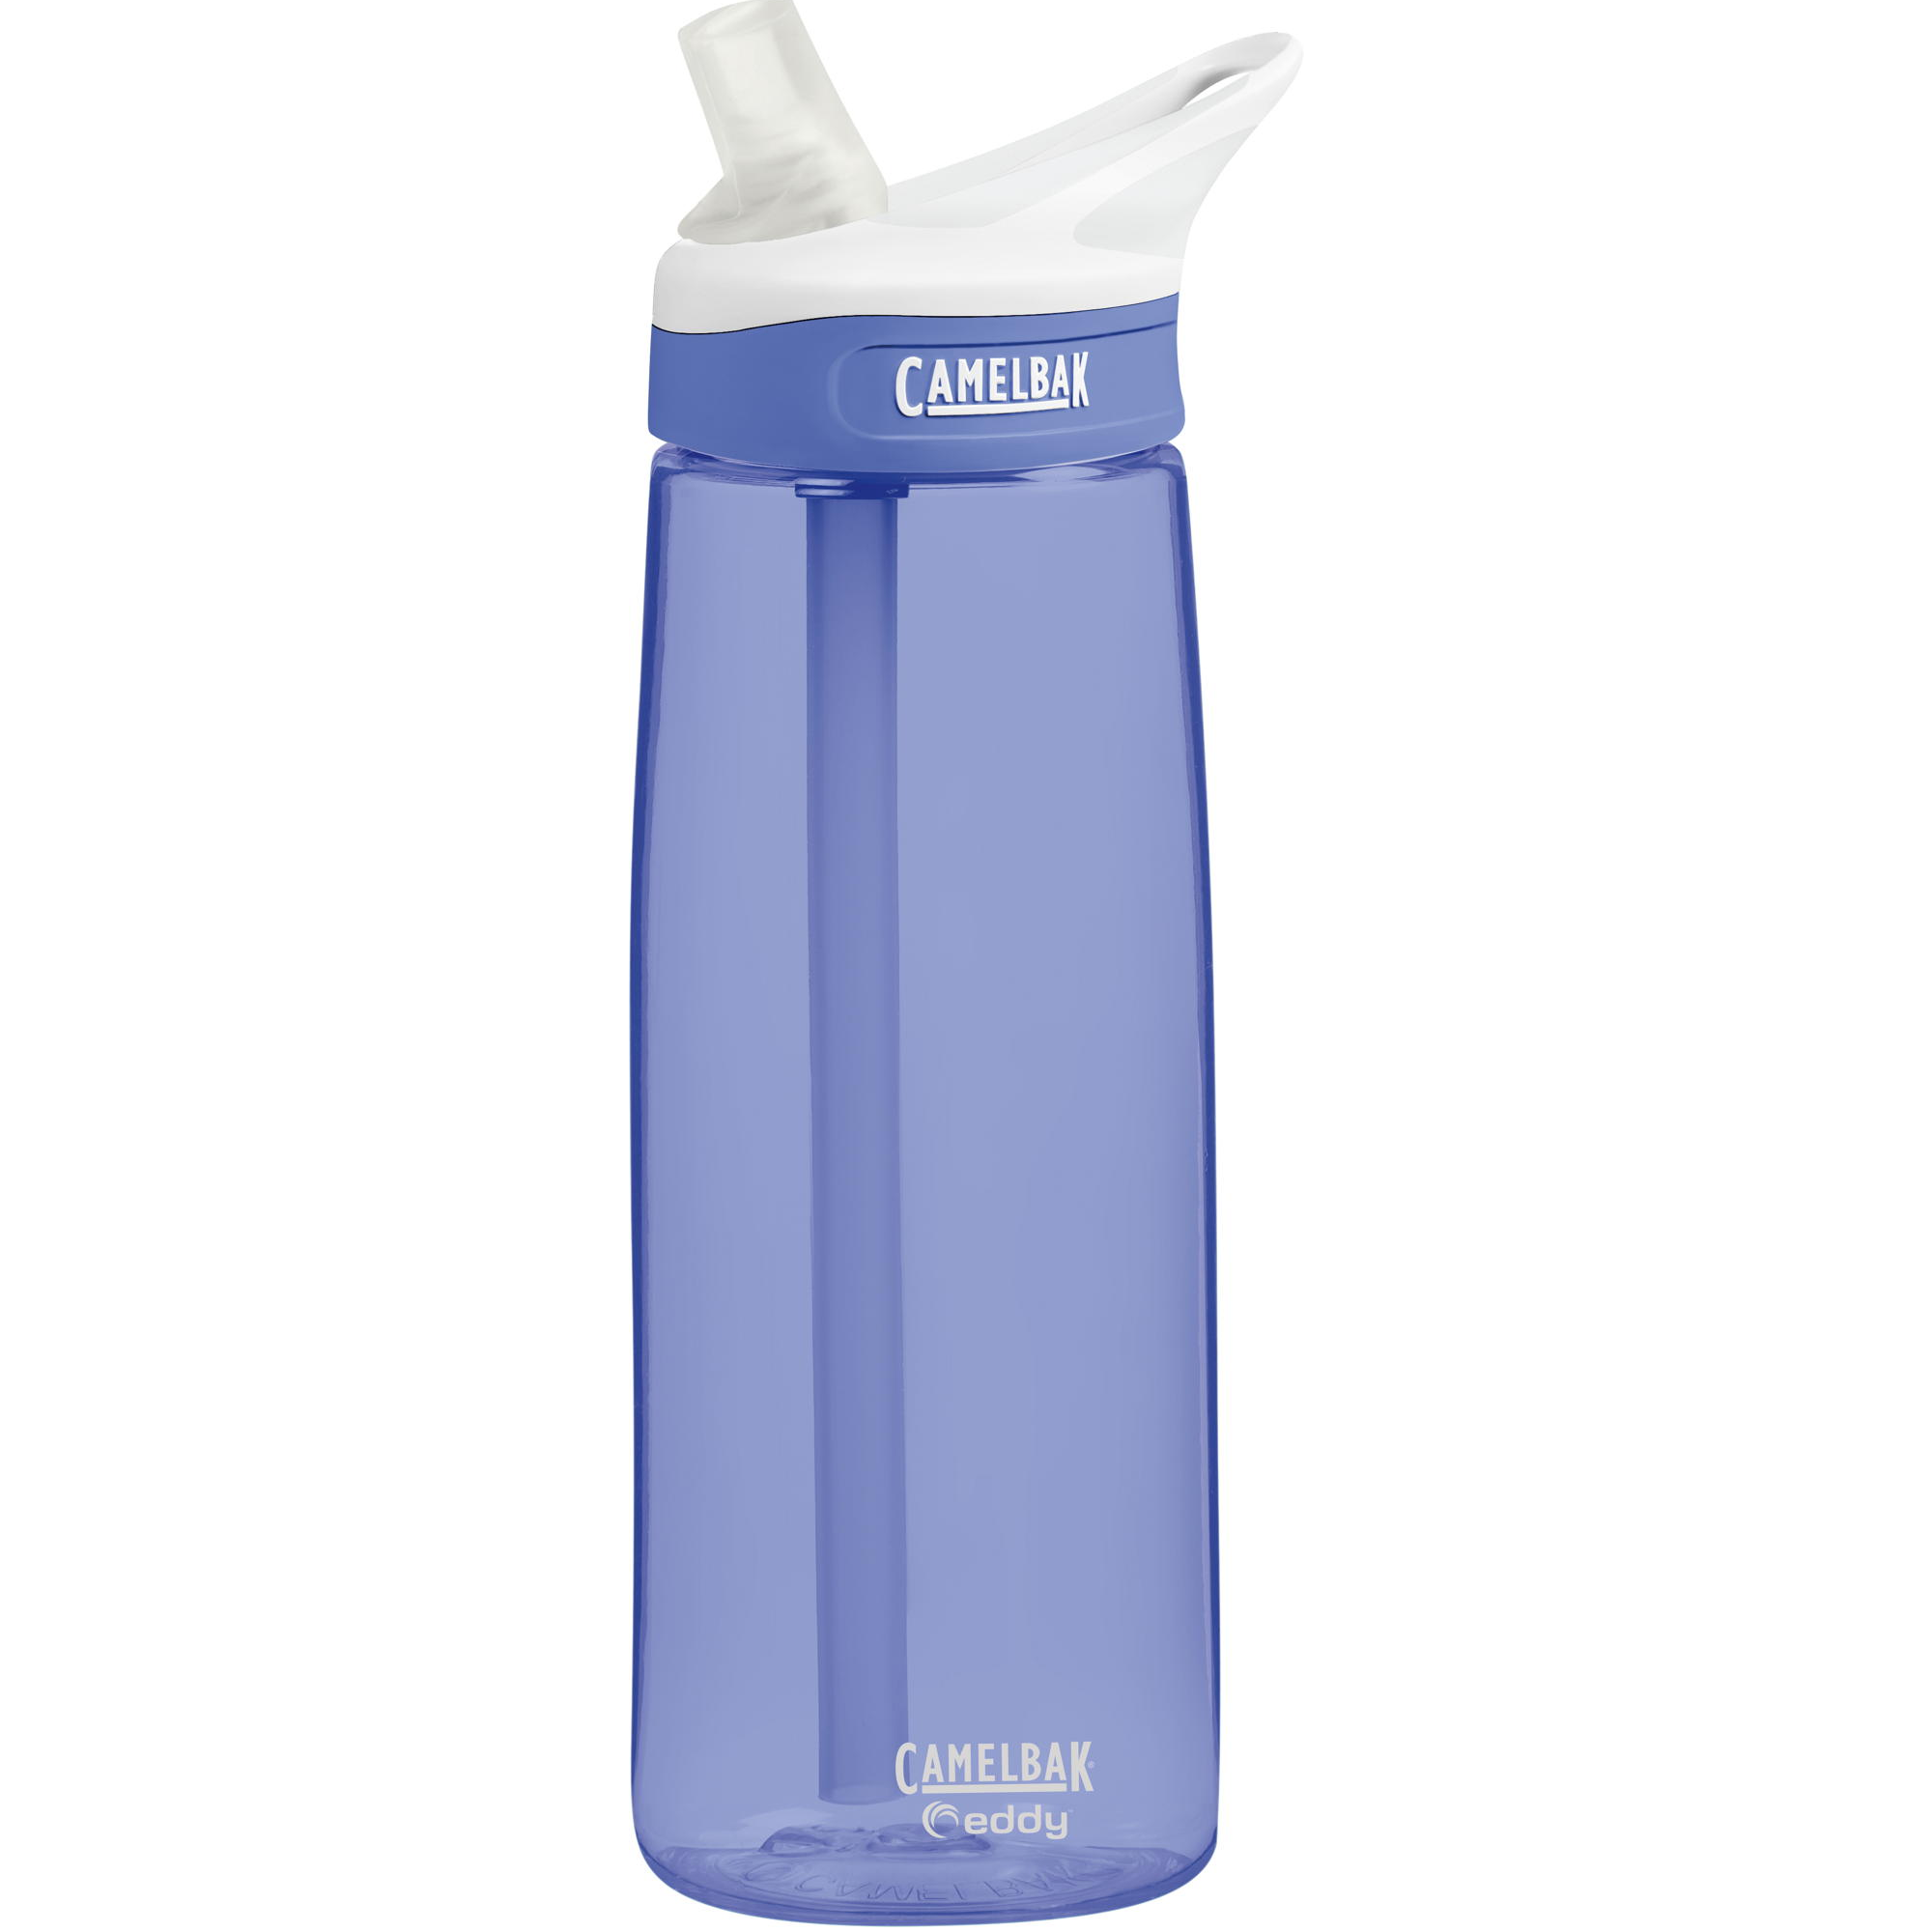 Camelbak .75L Eddy Water Bottle